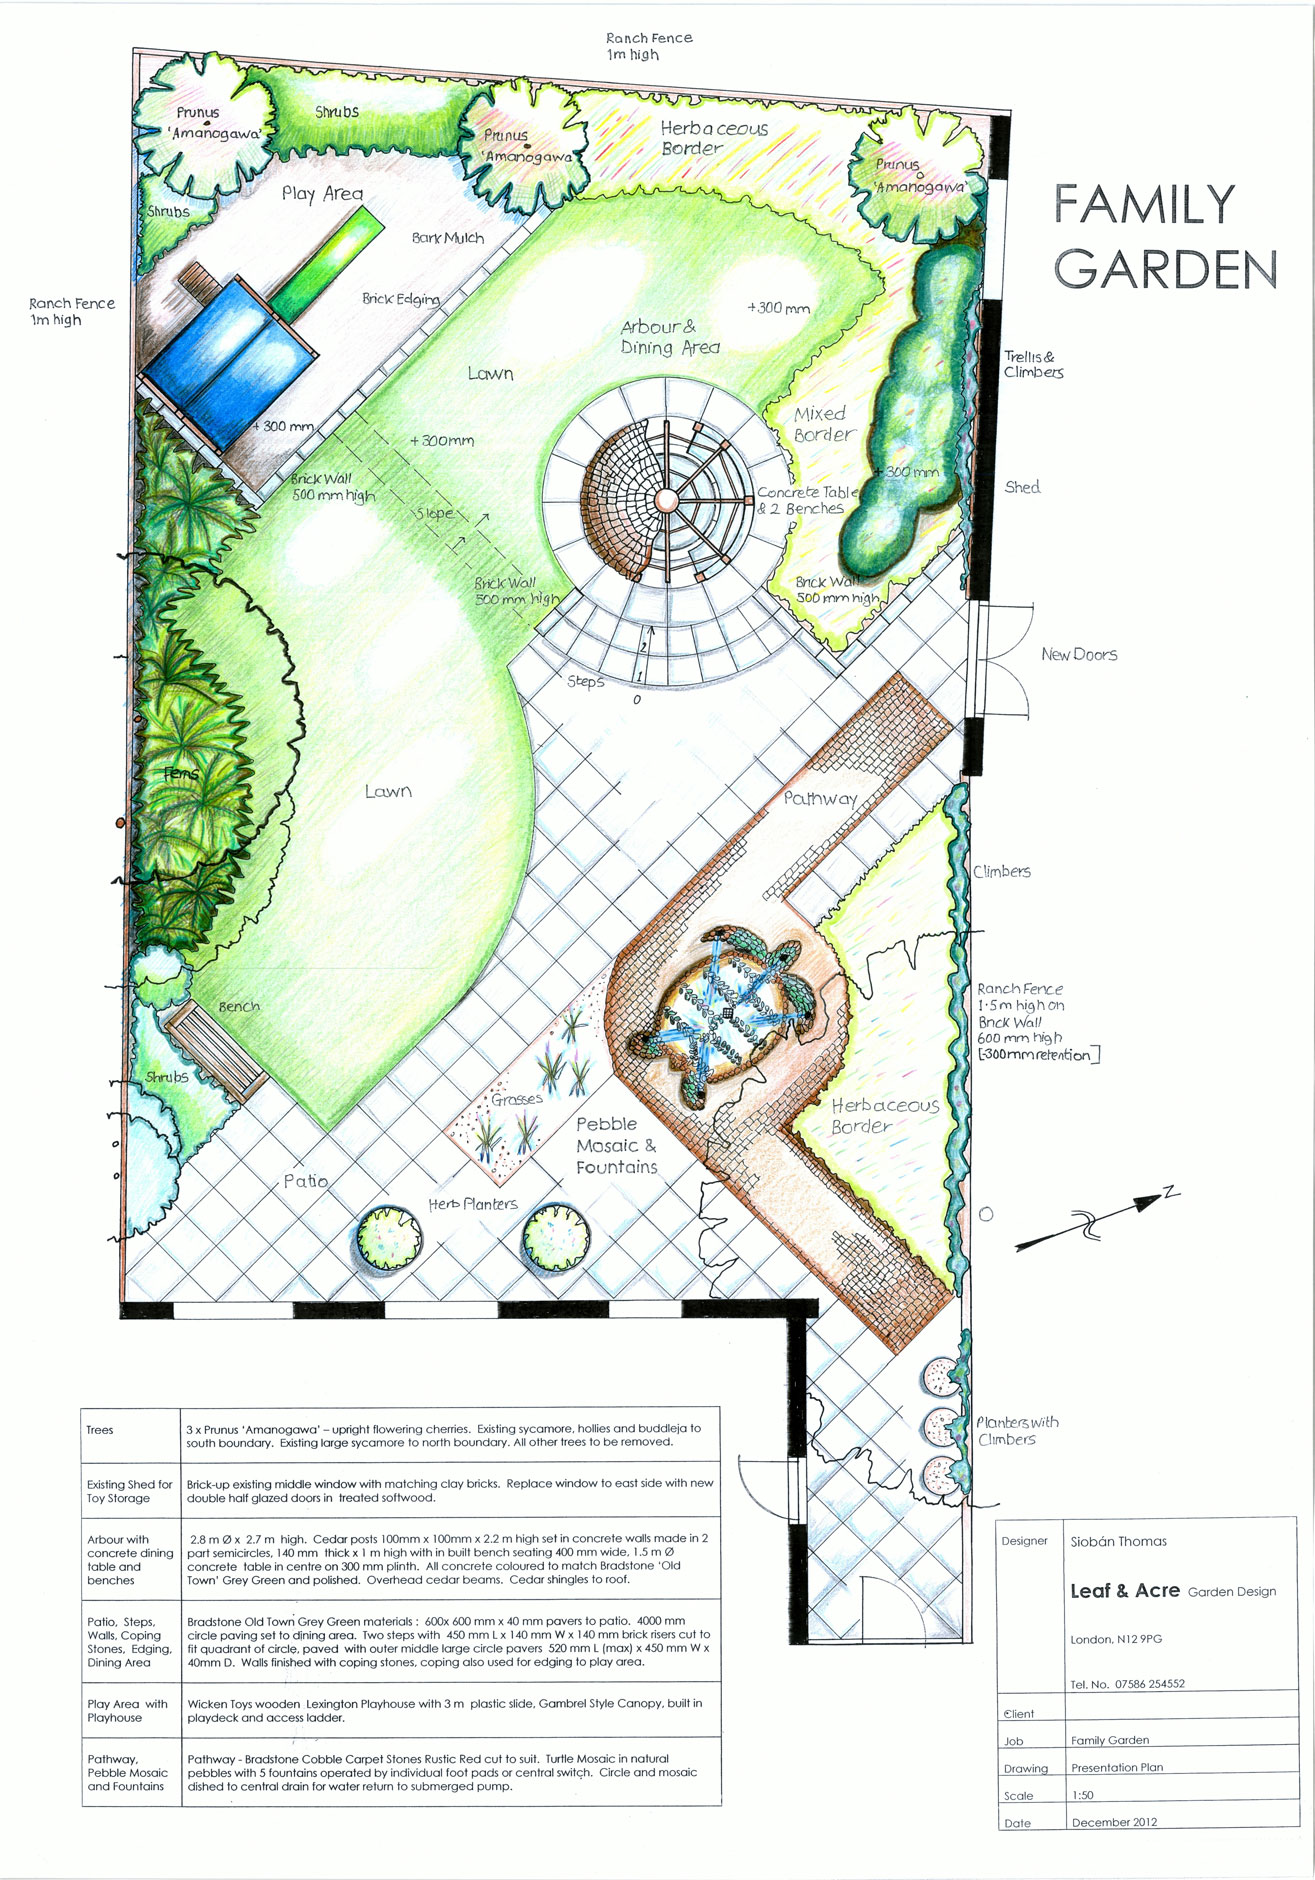 Garden design portfolio leaf and acre for Landscape planning and design